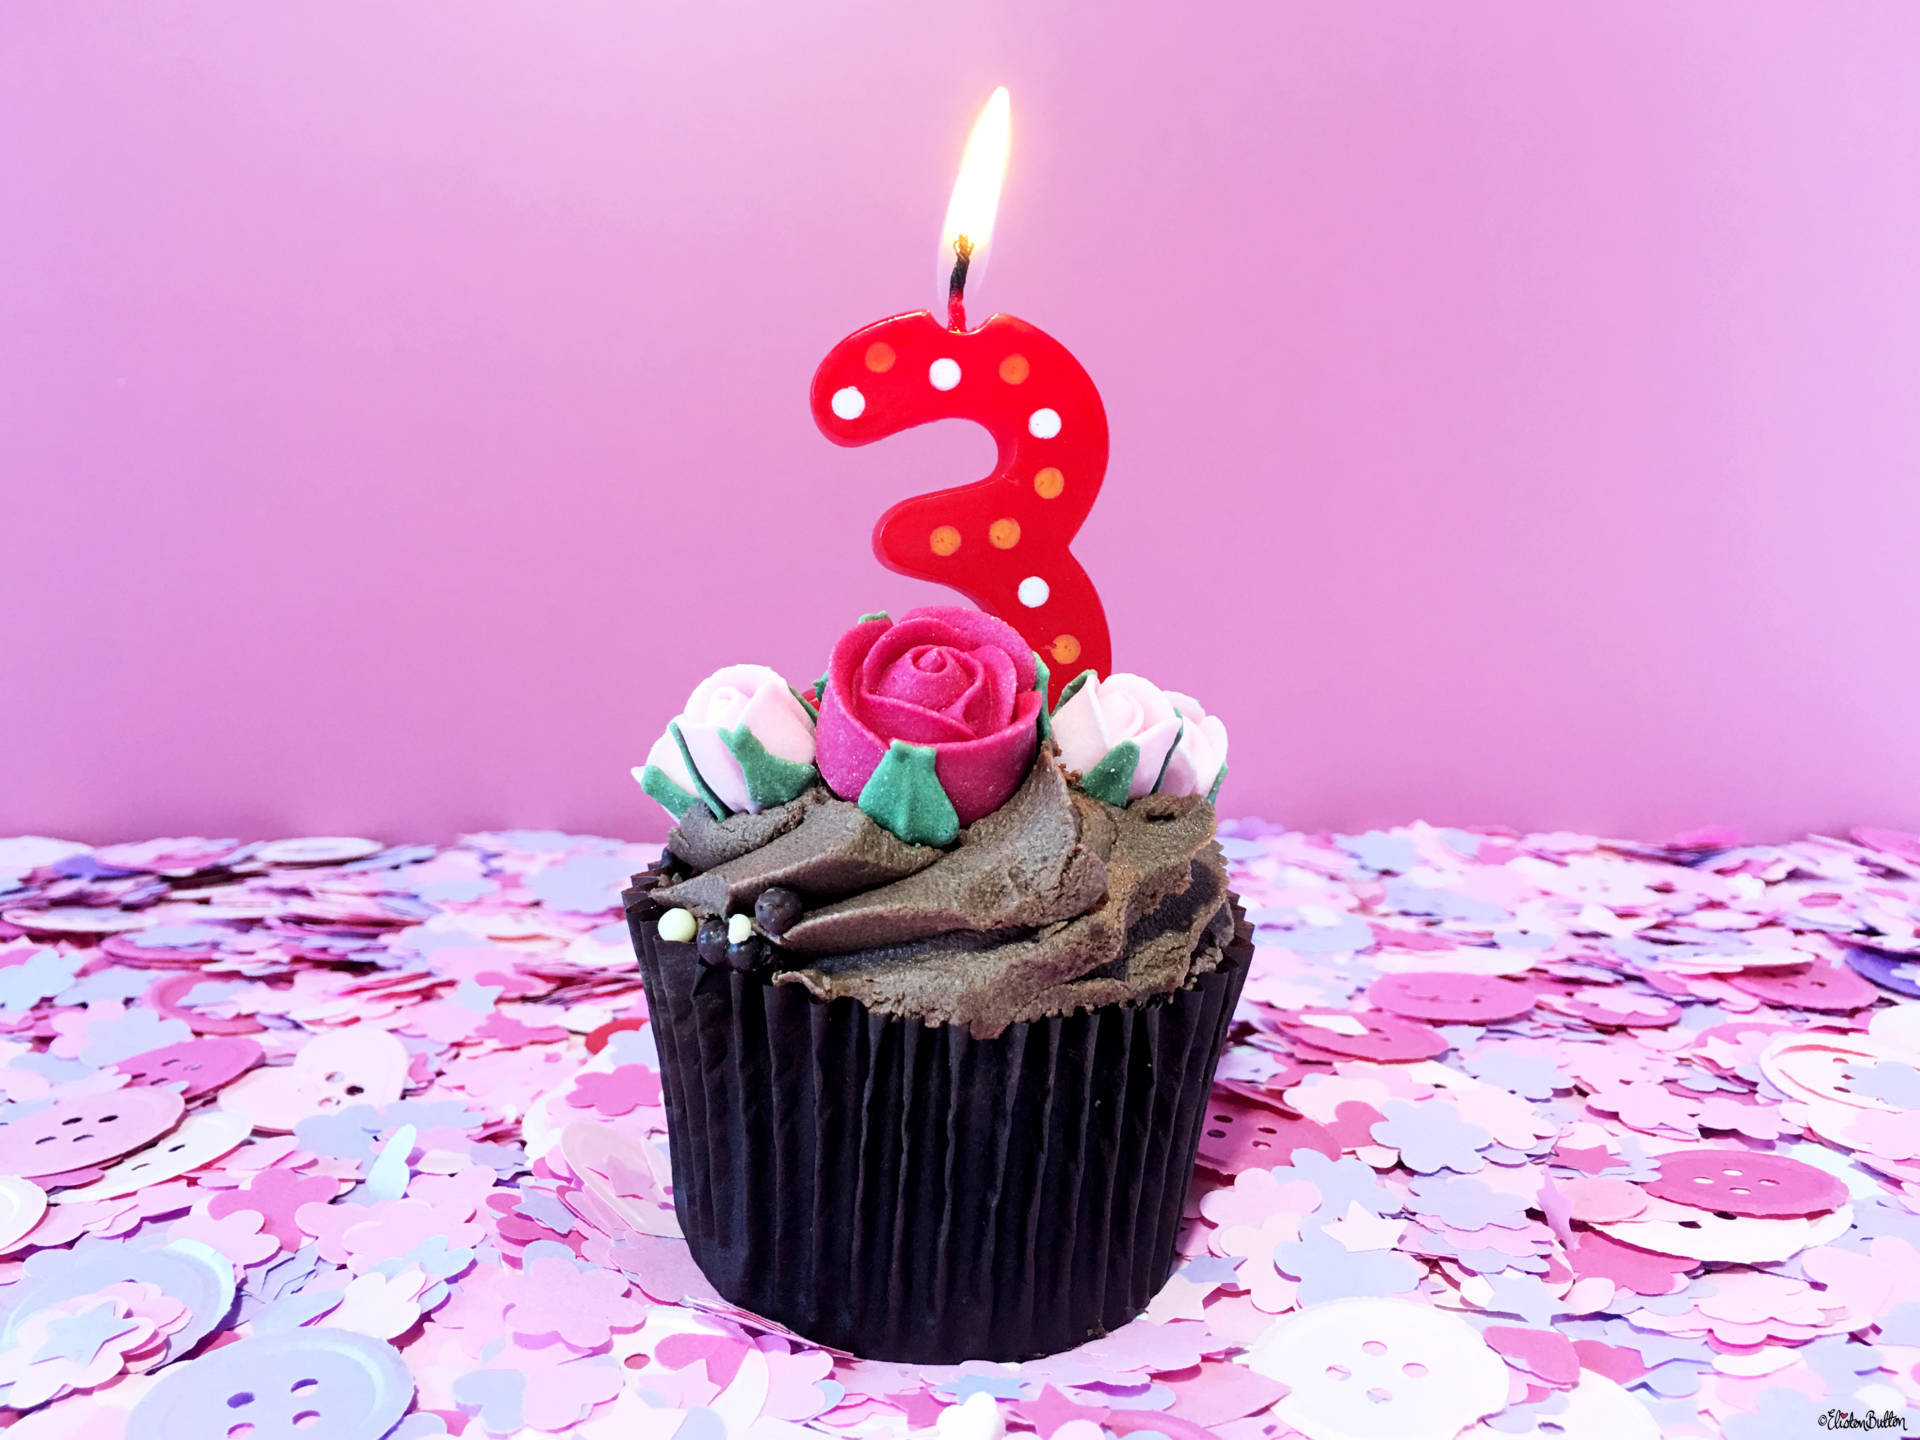 Eliston Button is 3! Frosted Cupcake with Icing Sugar Roses and Number 3 Candle - Eliston Button is 3! at www.elistonbutton.com - Eliston Button - That Crafty Kid – Art, Design, Craft & Adventure.